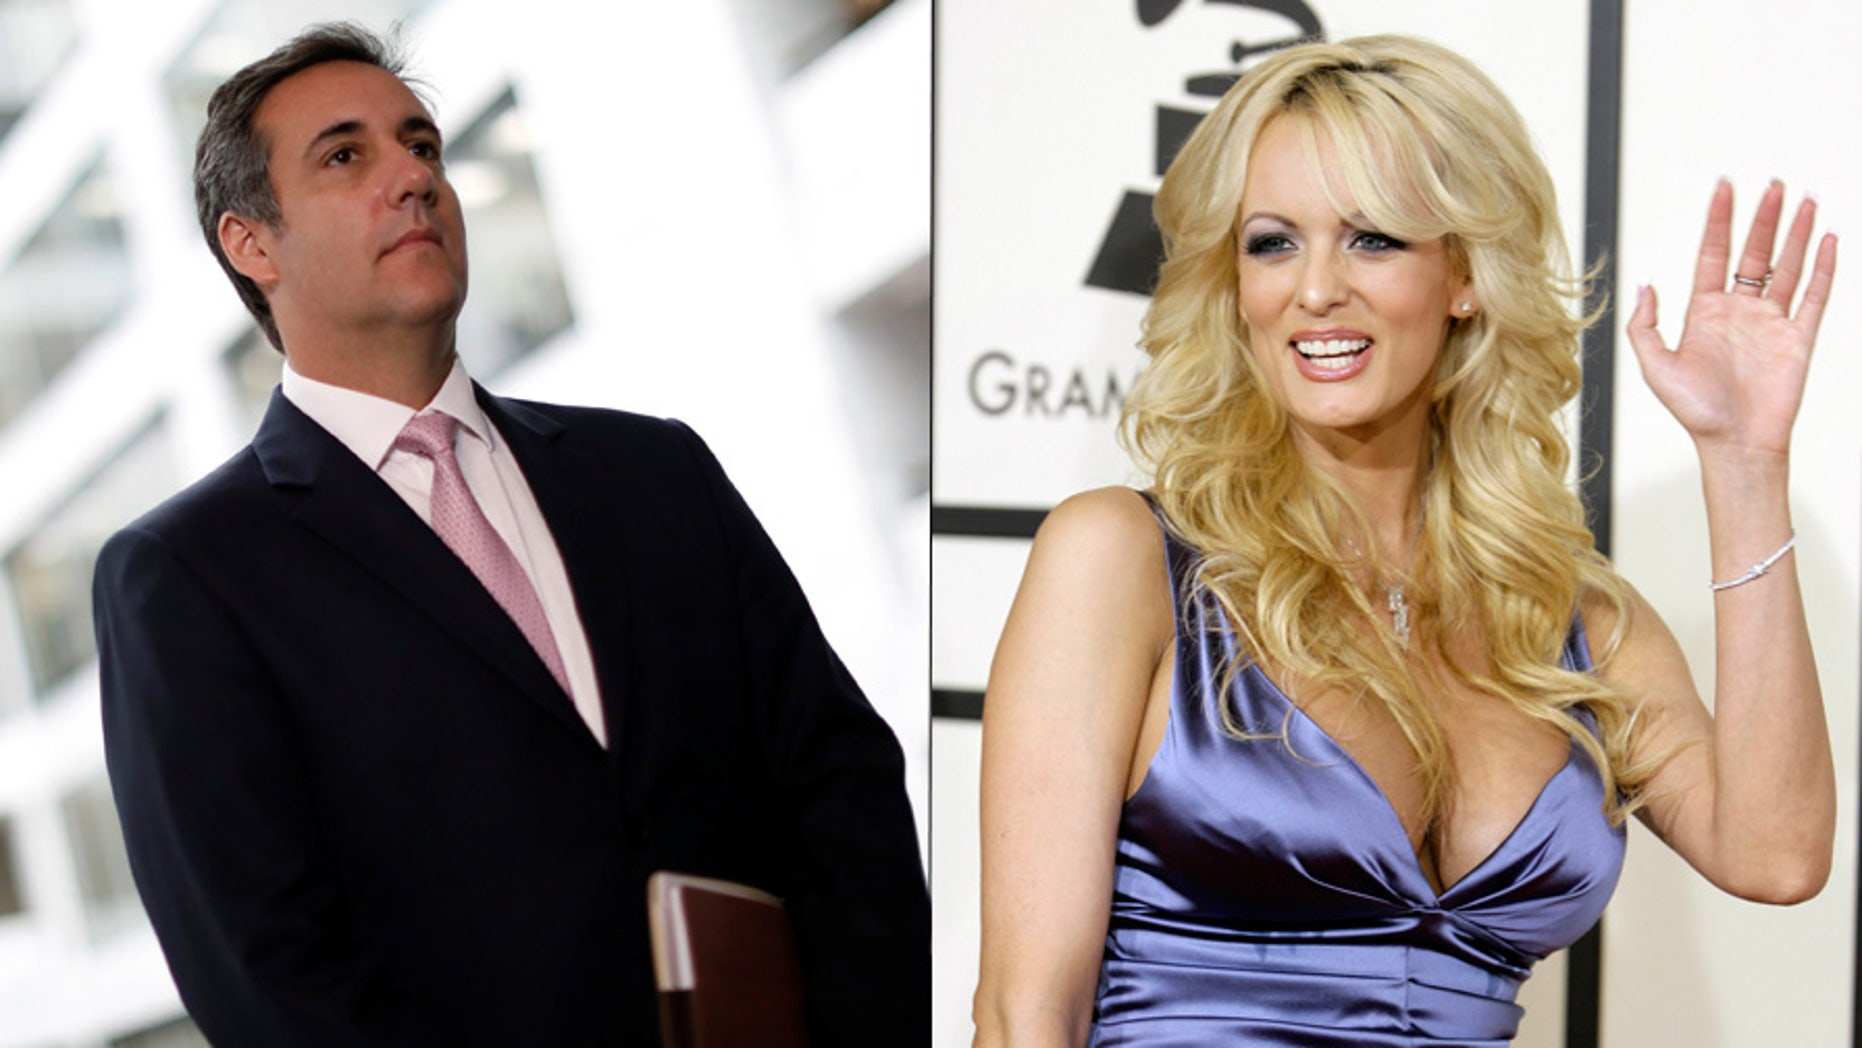 Michael Cohen and adult film star Stormy Daniels